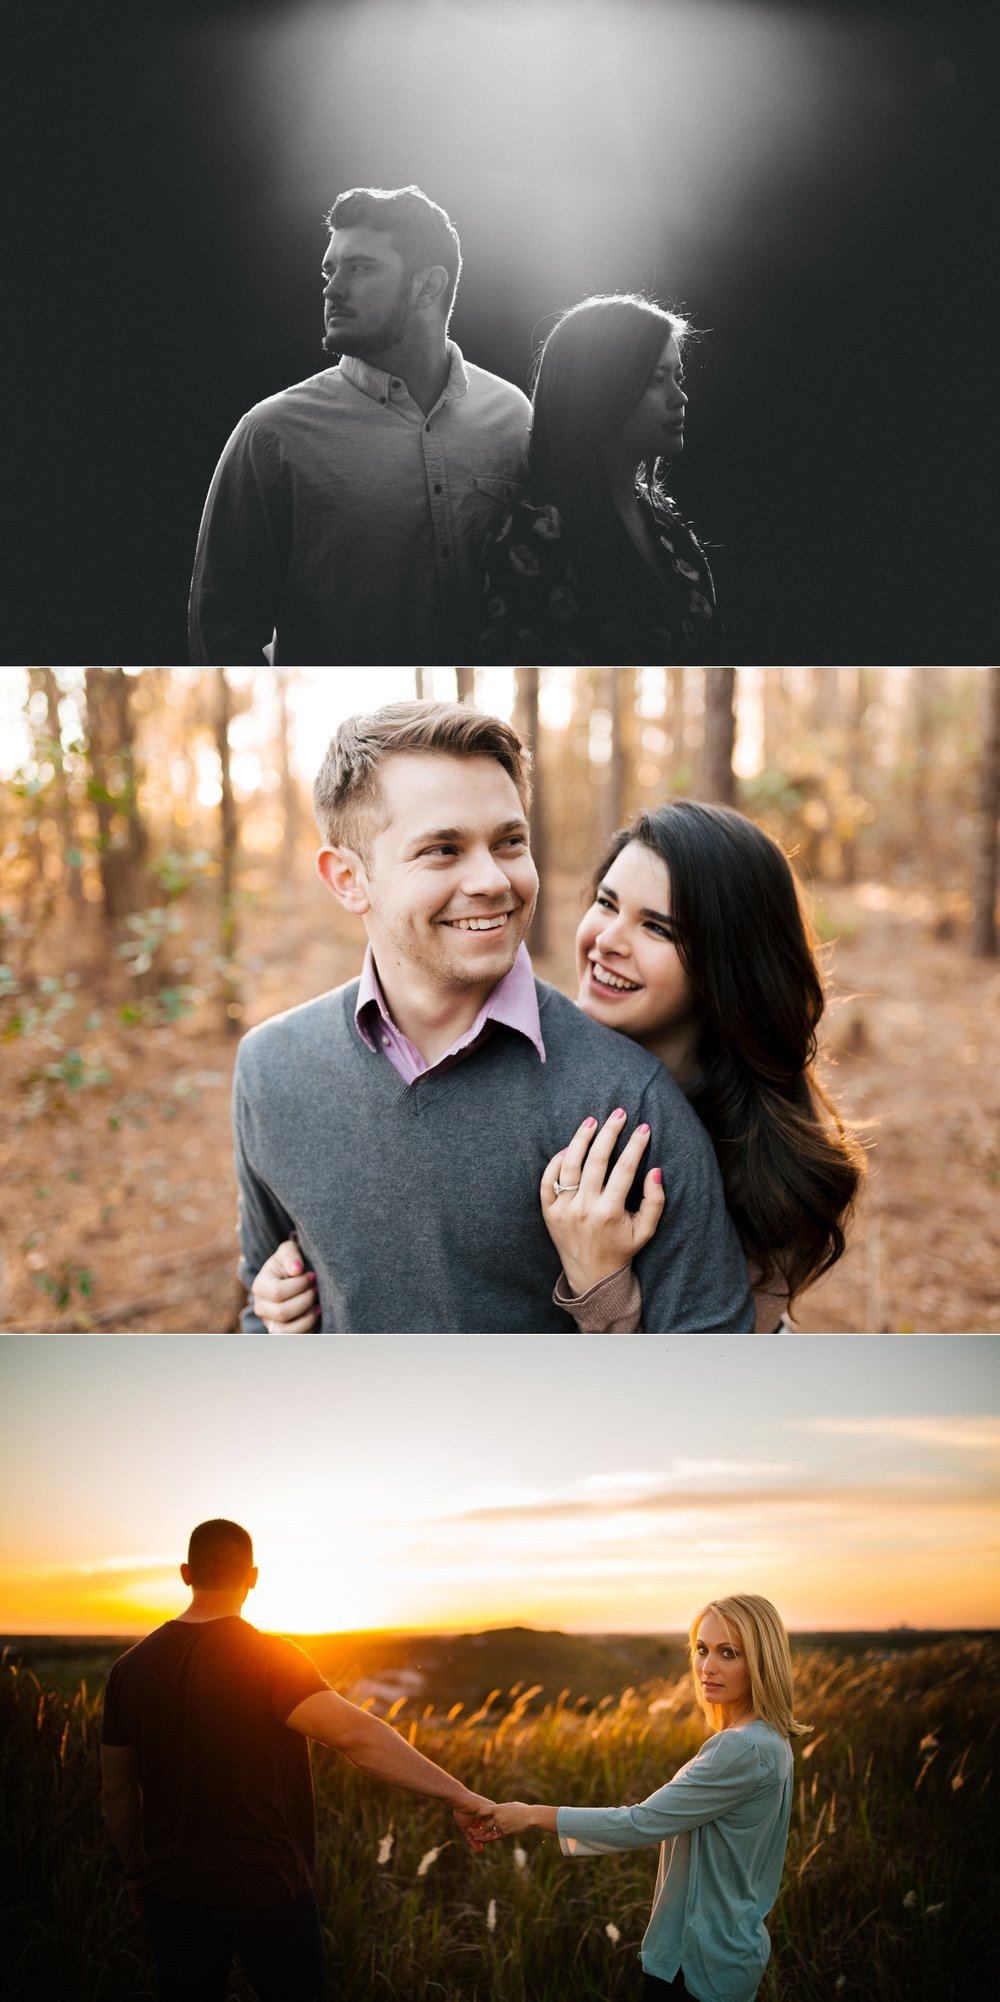 Jake & Katie Photography Best of Couples 2016-007.jpg